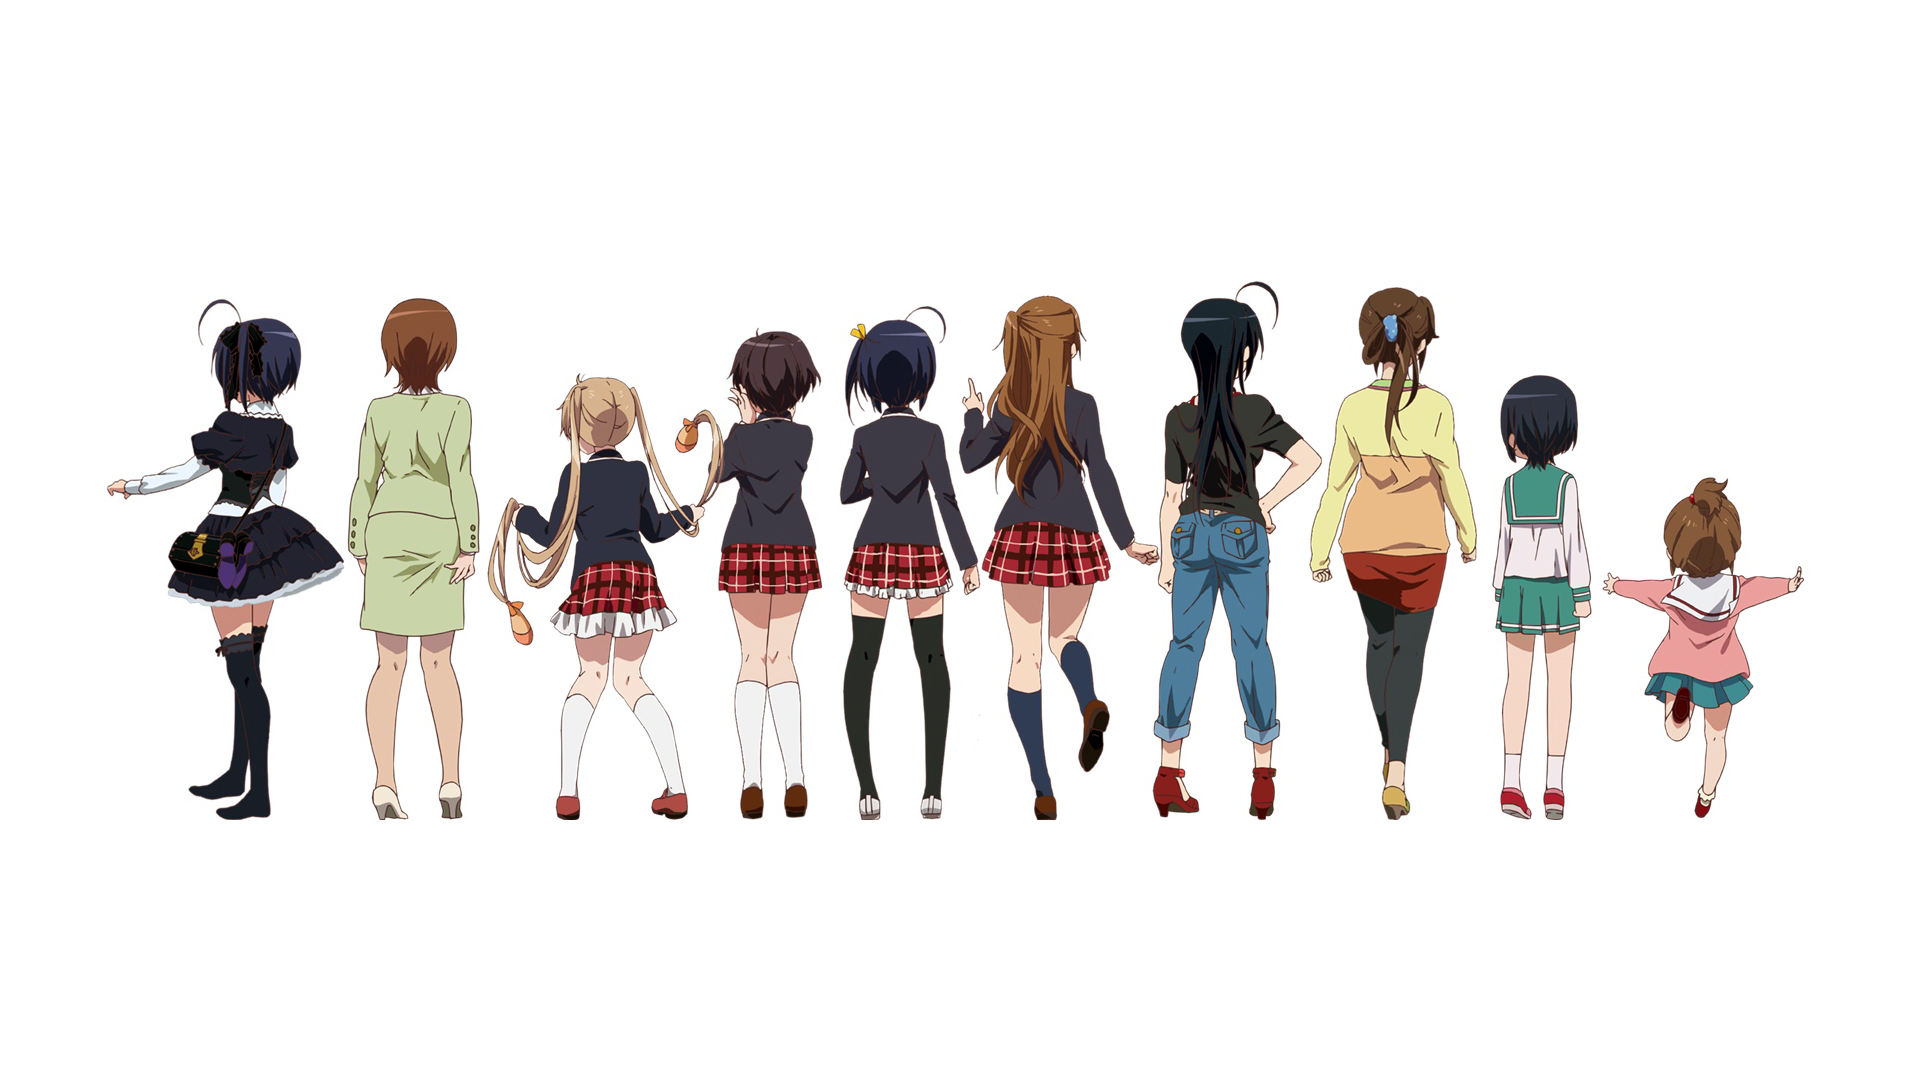 Love Chunibyo Other Delusions Hd Wallpaper Background Image